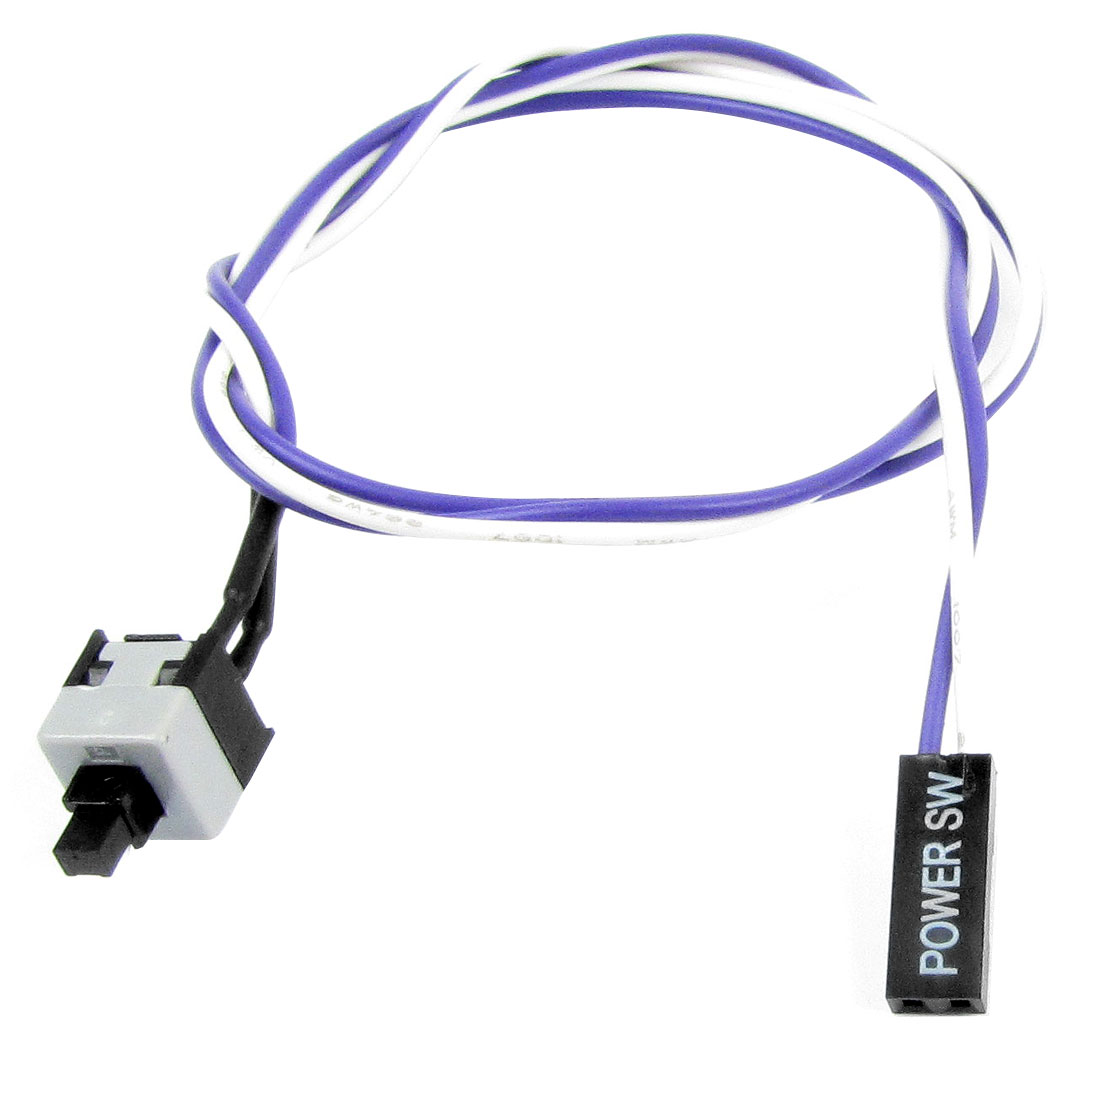 50cm Purple White Flexible Power Switch Button Cable for PC Computer